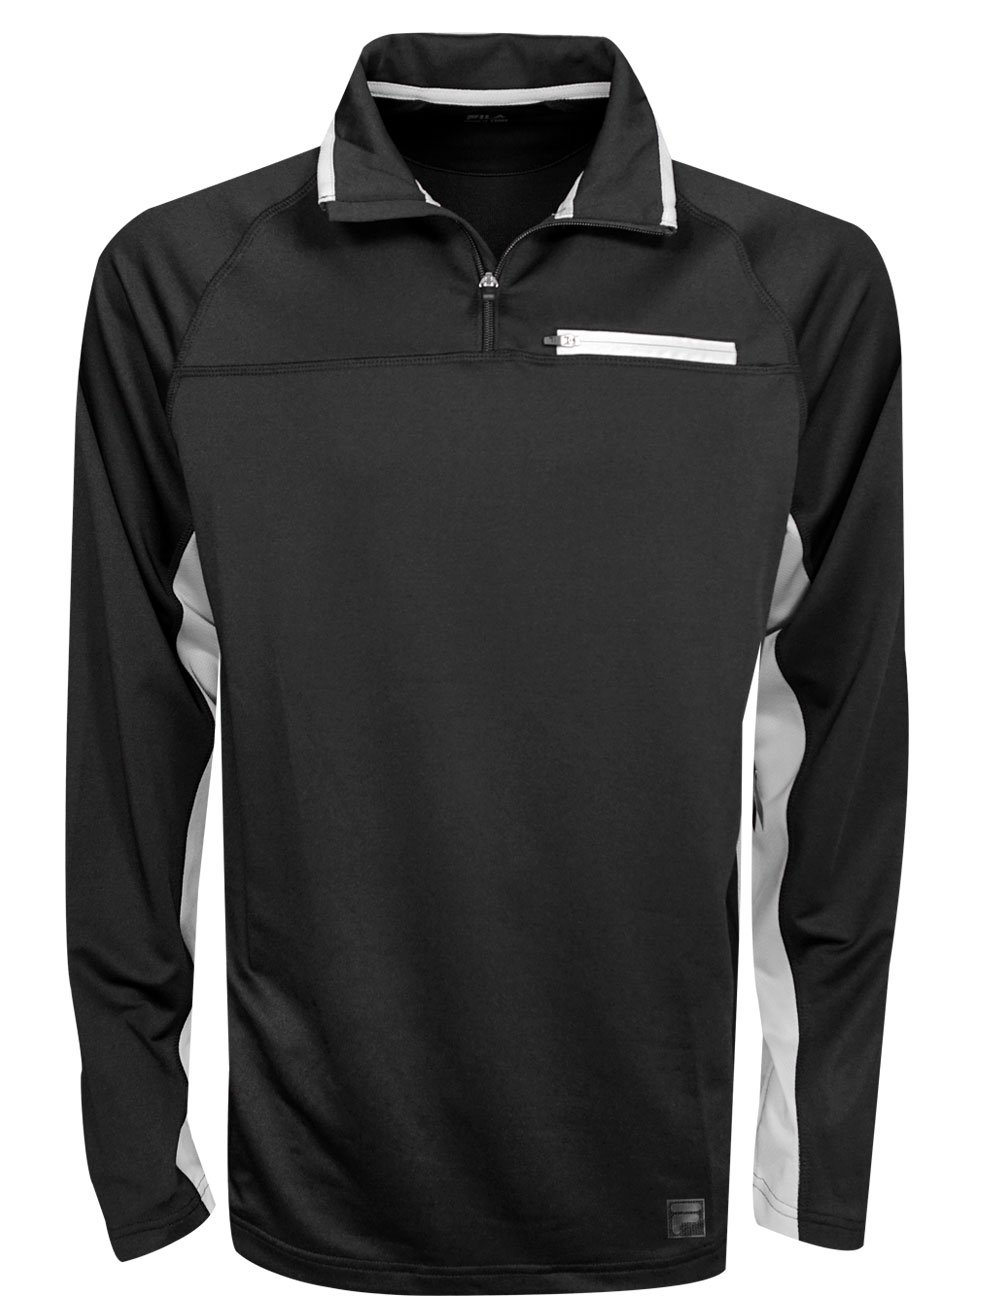 Fila Men's 1/4 Zip Pullover, Black/Highrise, SM by Fila